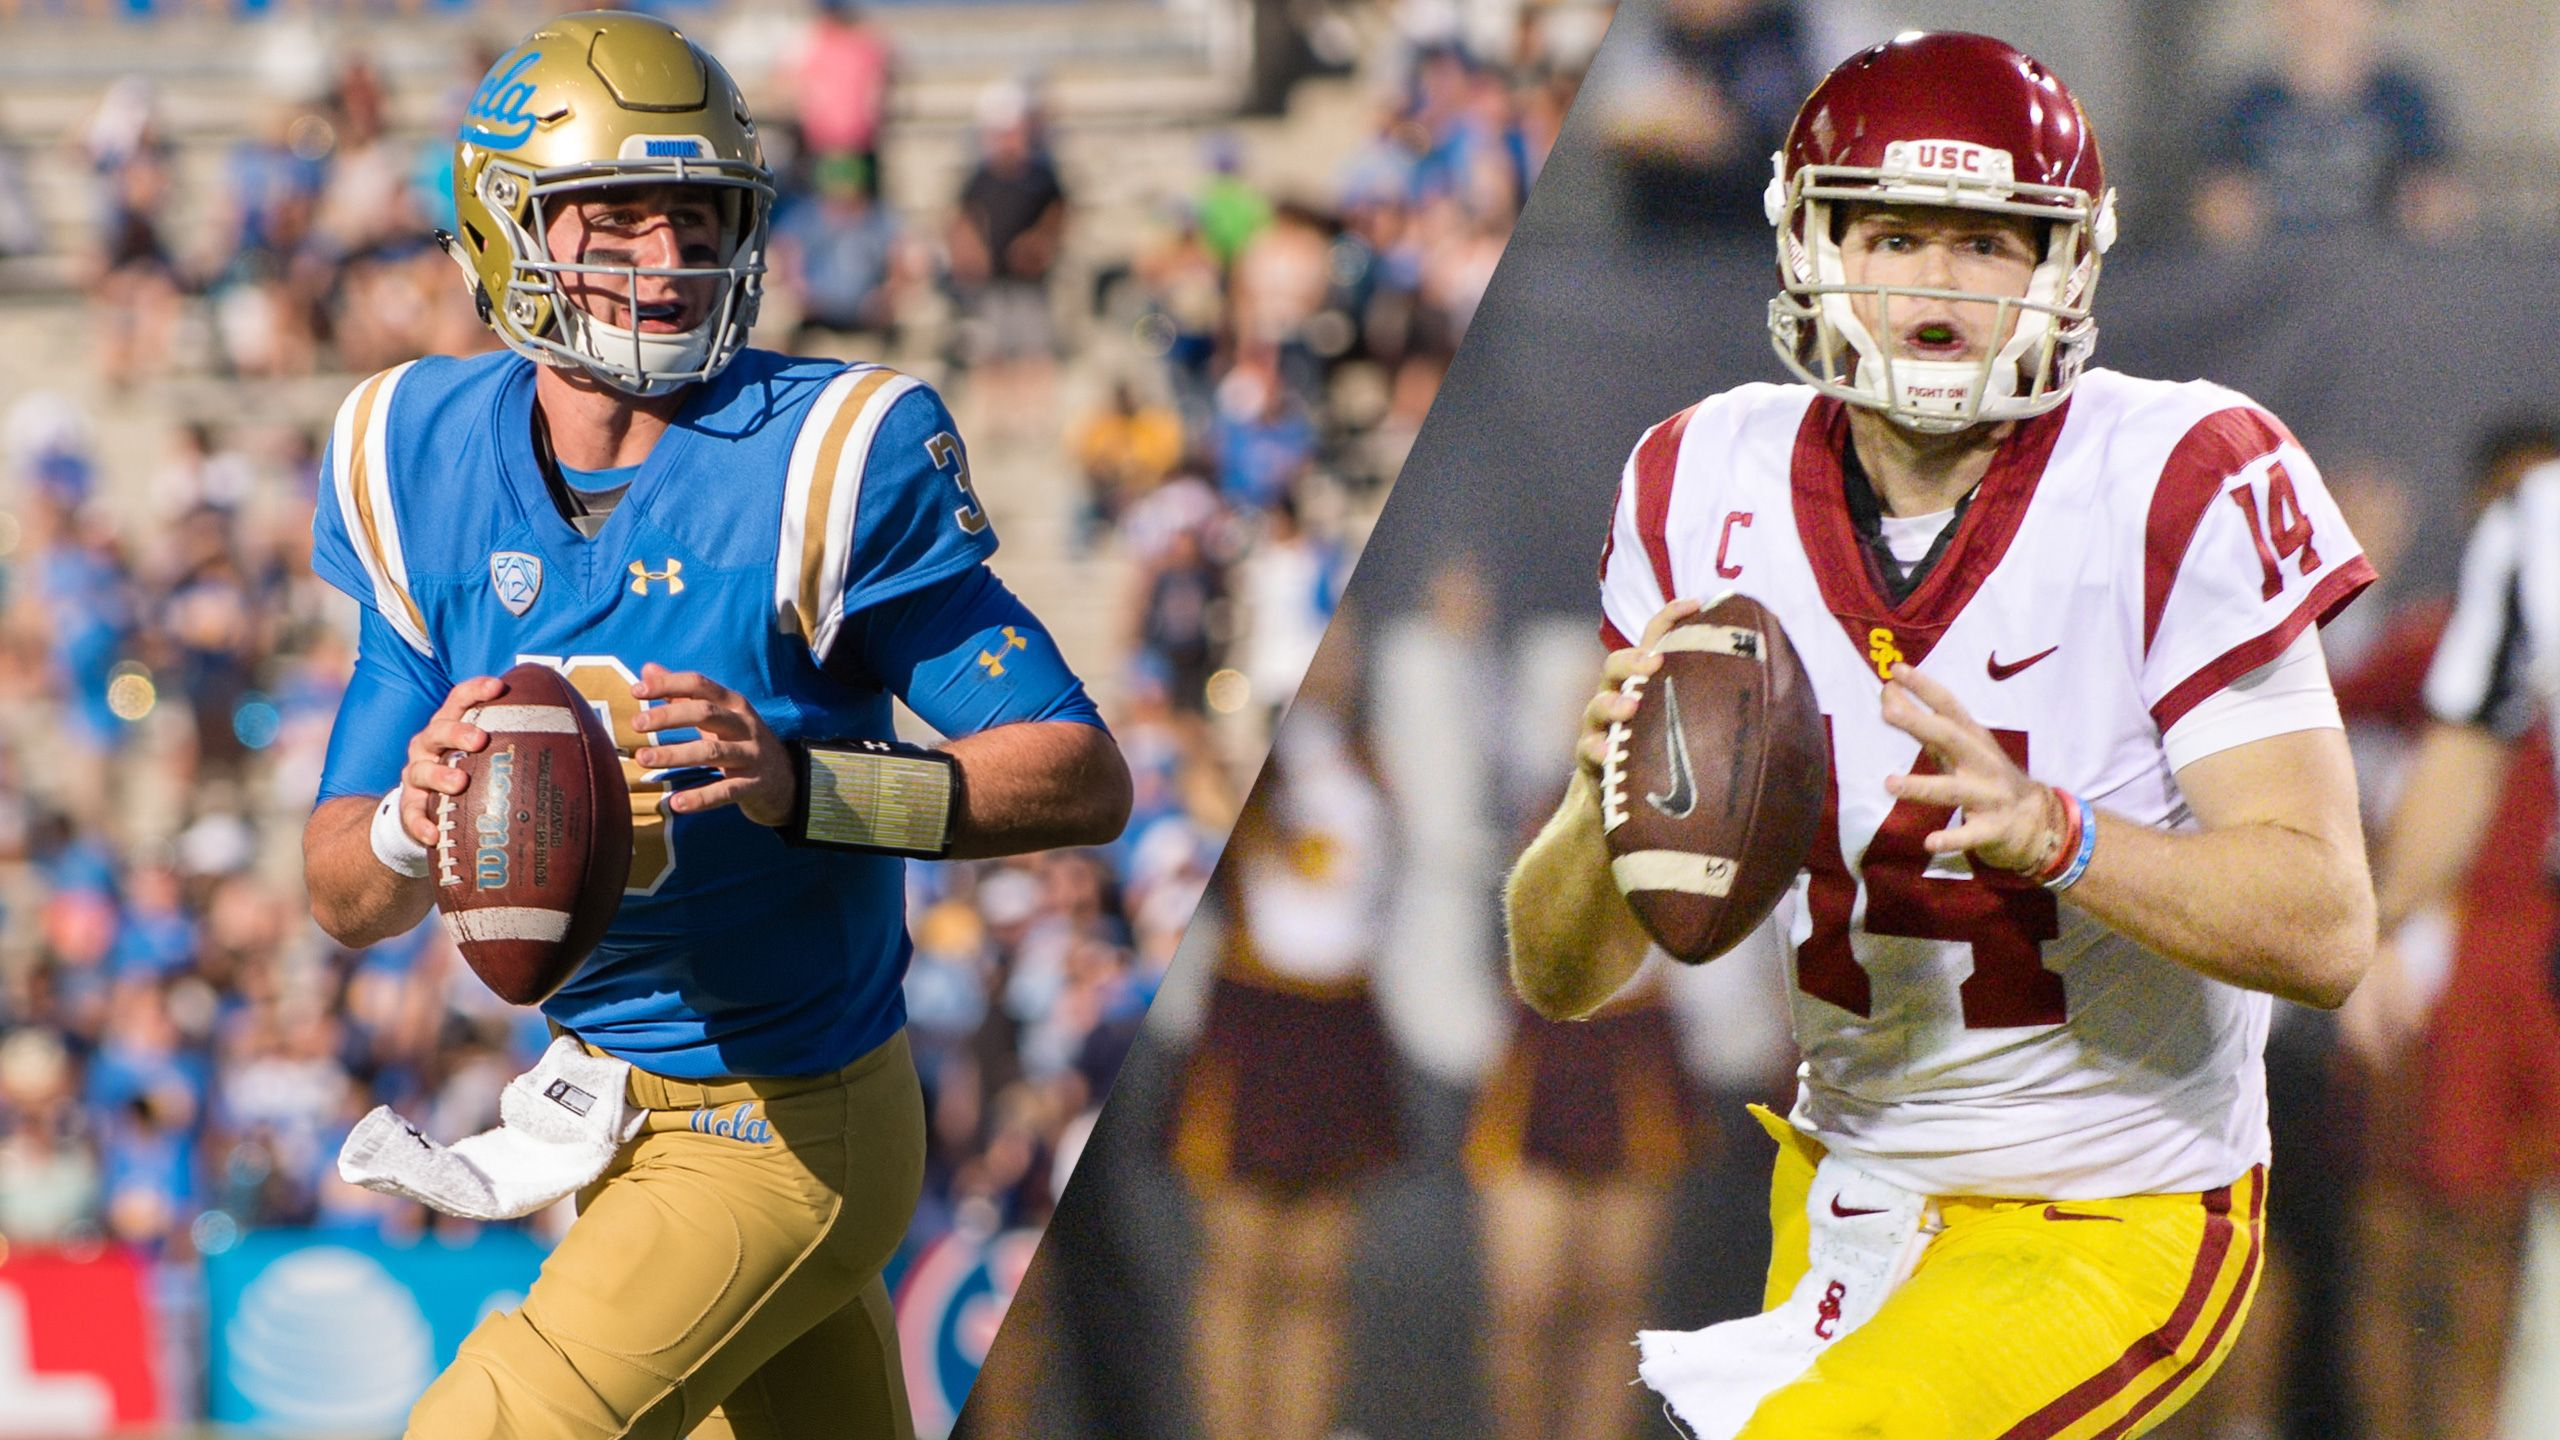 UCLA vs. #11 USC (Football)